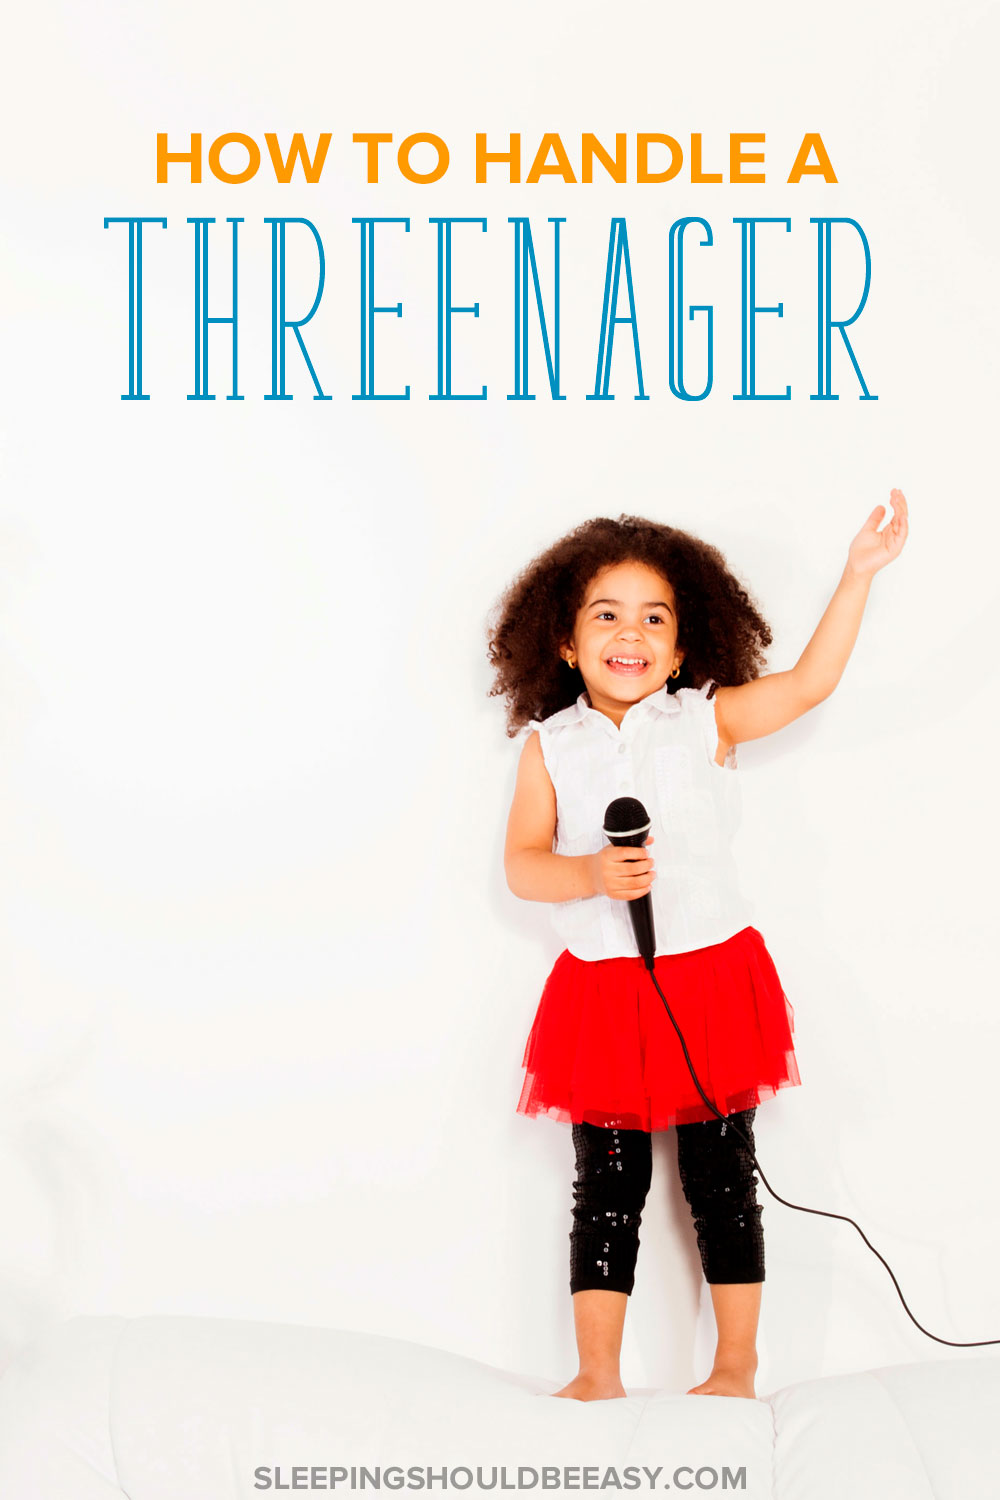 Disciplining a three-year-old can be a challenge. Here are 5 effective ways to handle a threenager, no matter how strong-willed your child may be.